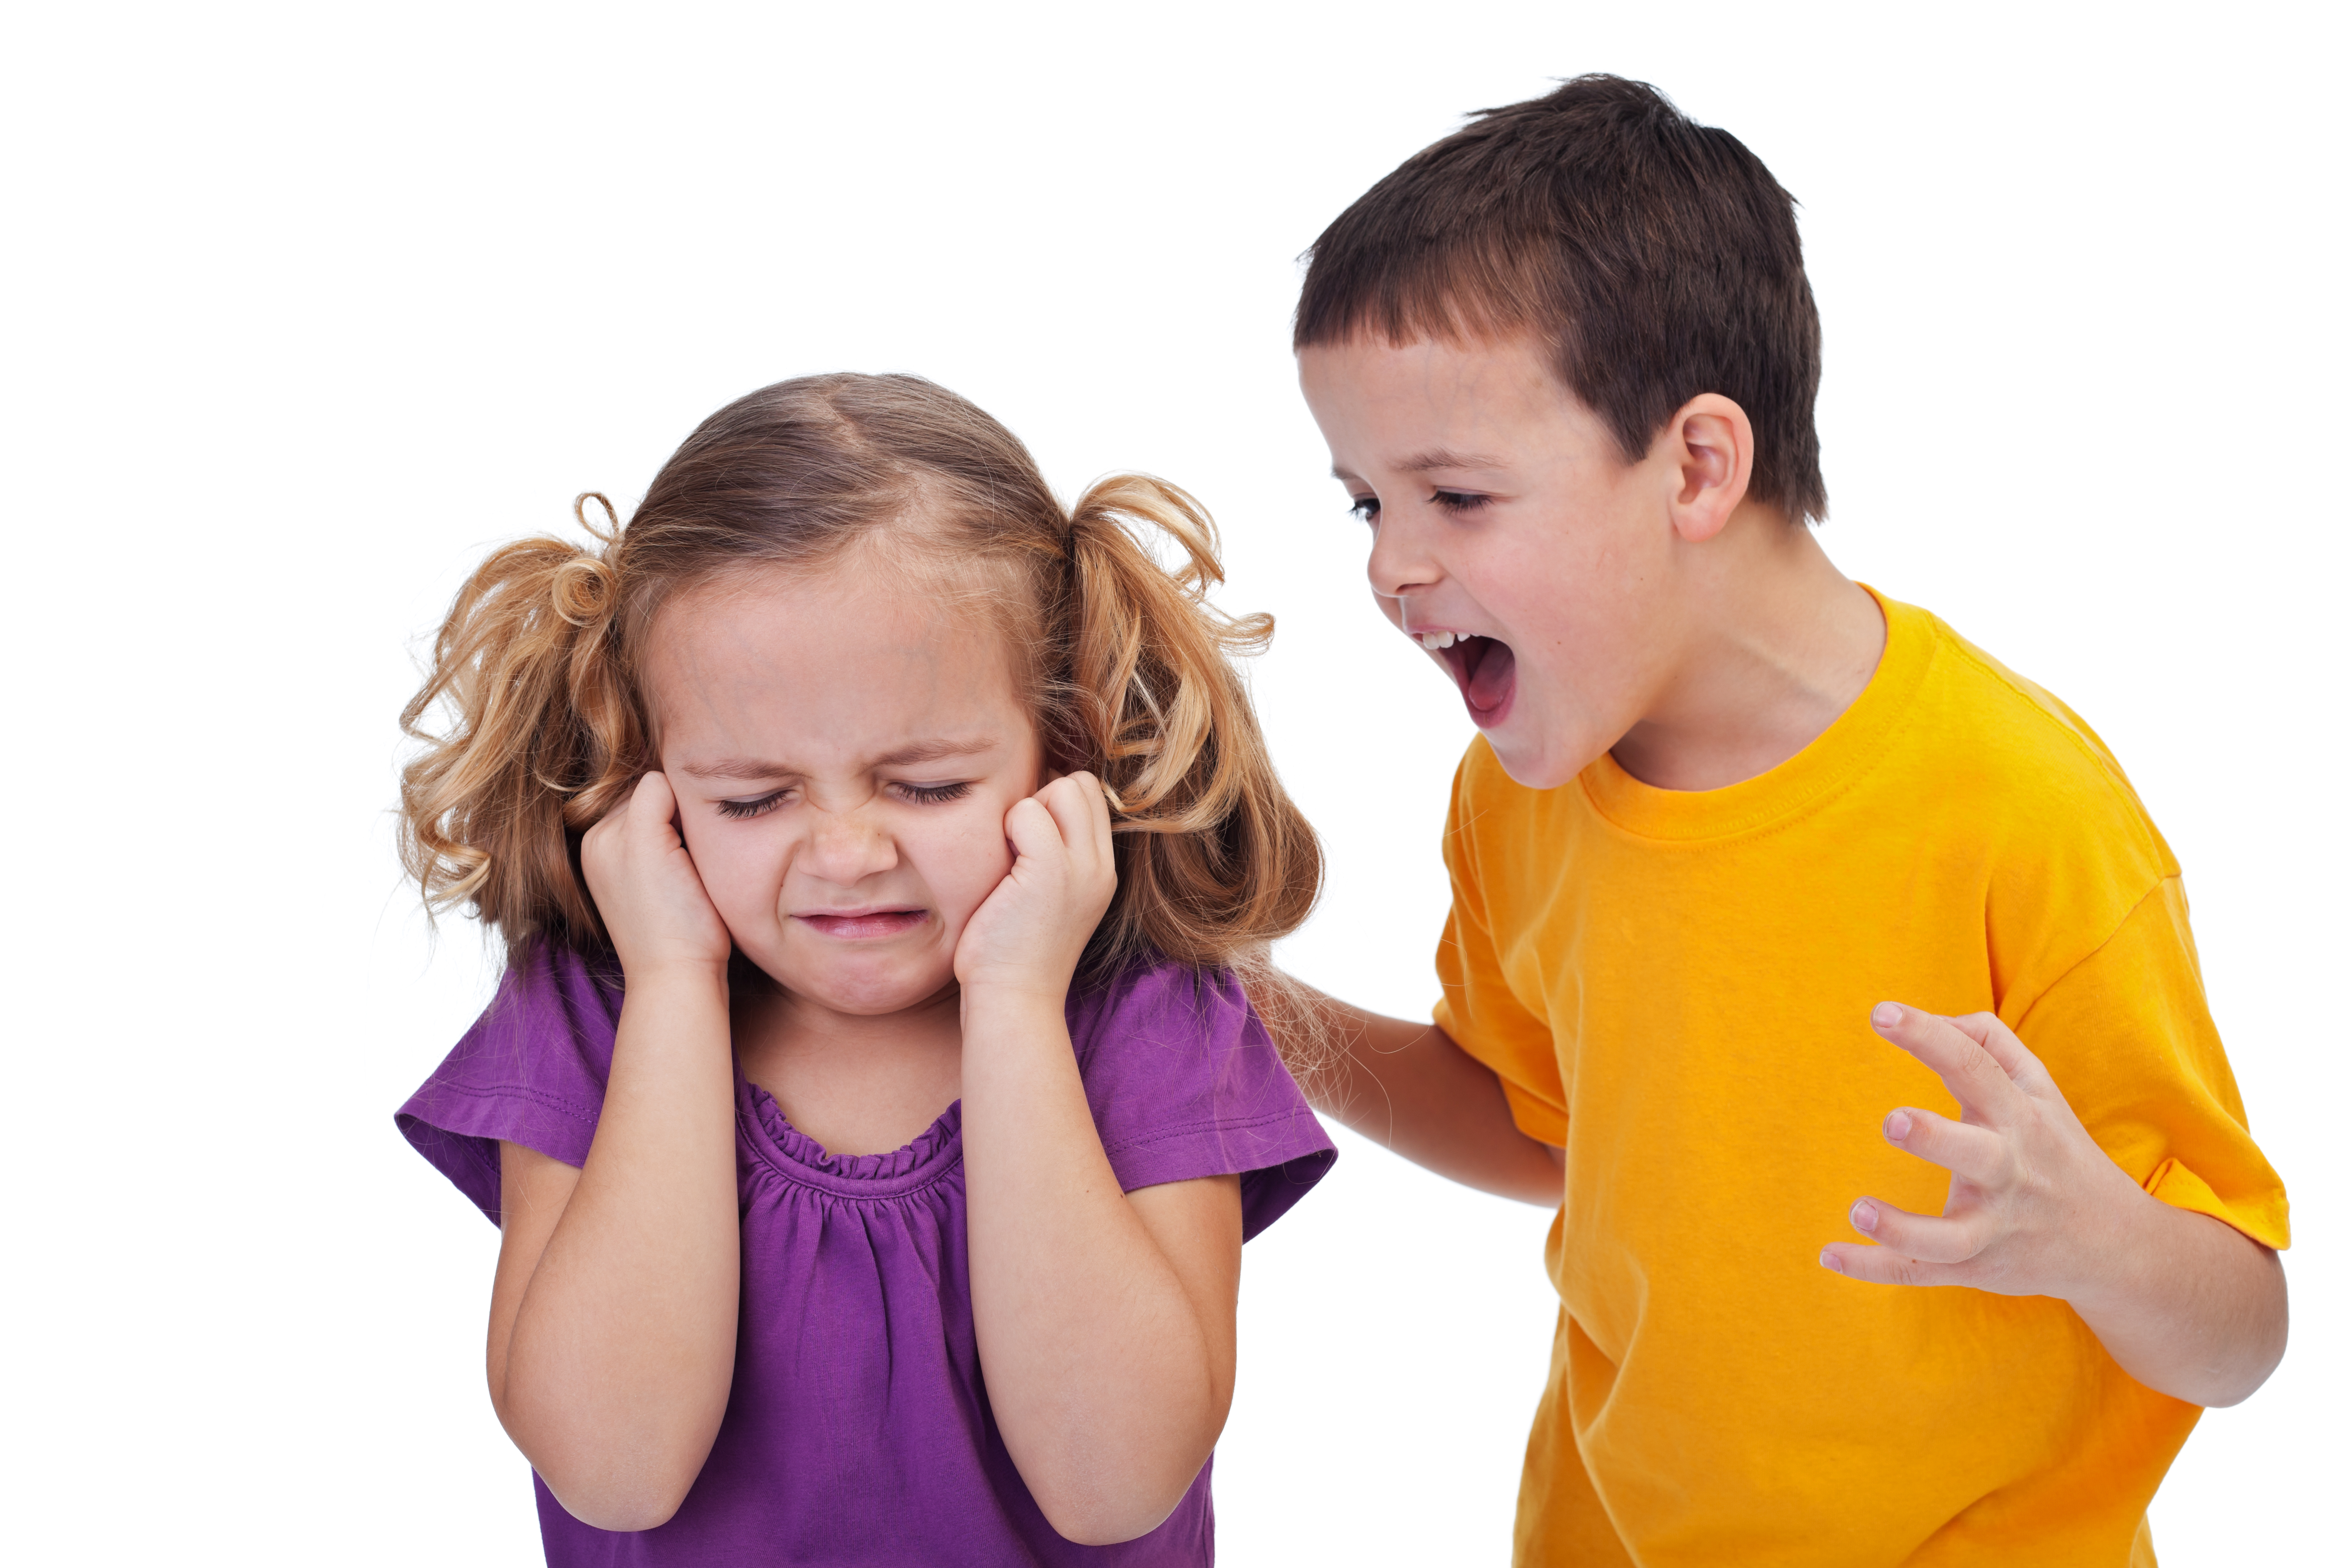 Handling Sibling Rivalry or Taunting/Teasing from Peers